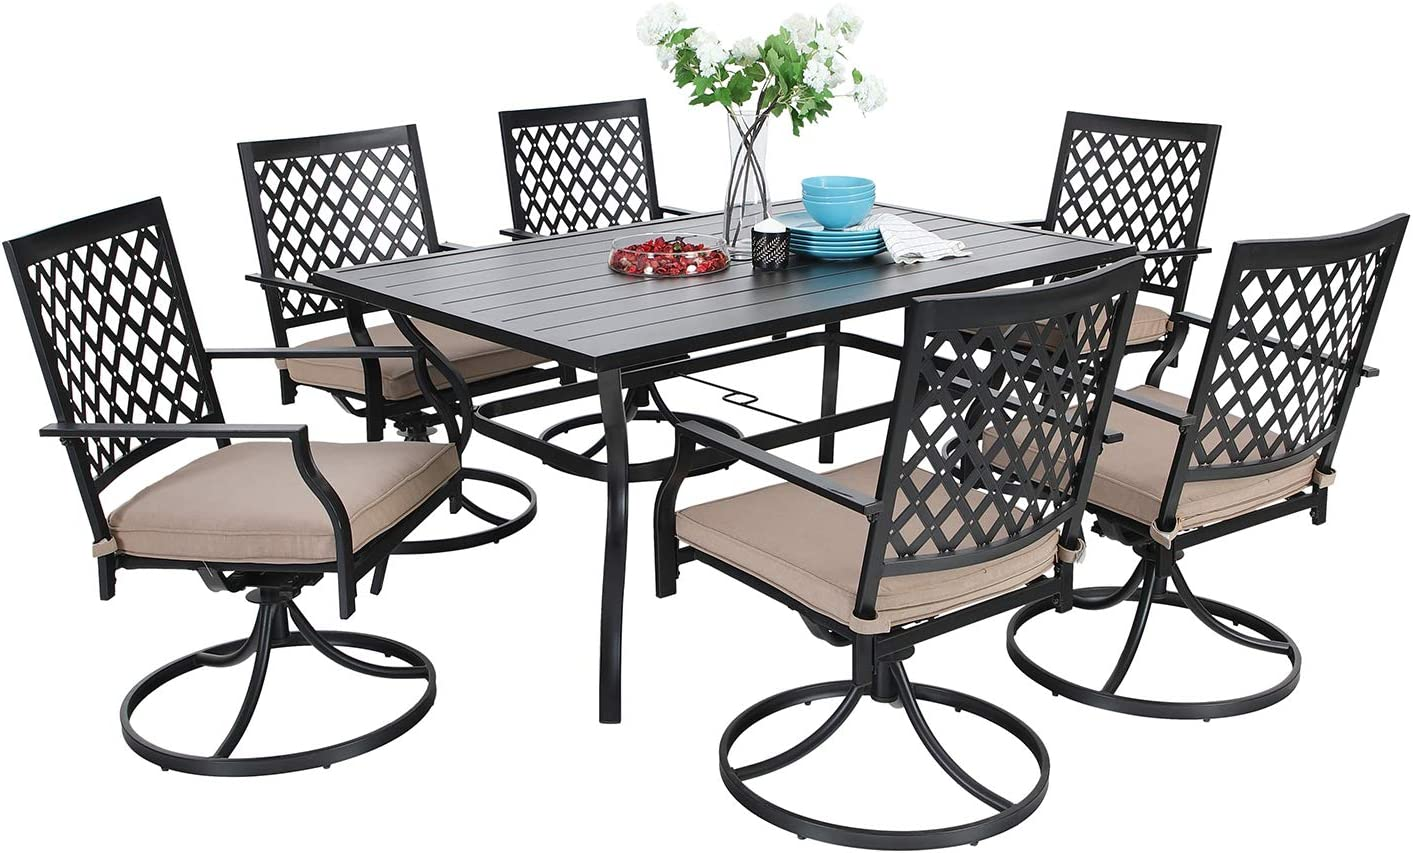 MF Dining Set 100 Pieces Metal Patio Furniture Set, 100 x Swivel Chairs with 10  Rectangular Umbrella Table for Outdoor Lawn Garden Black